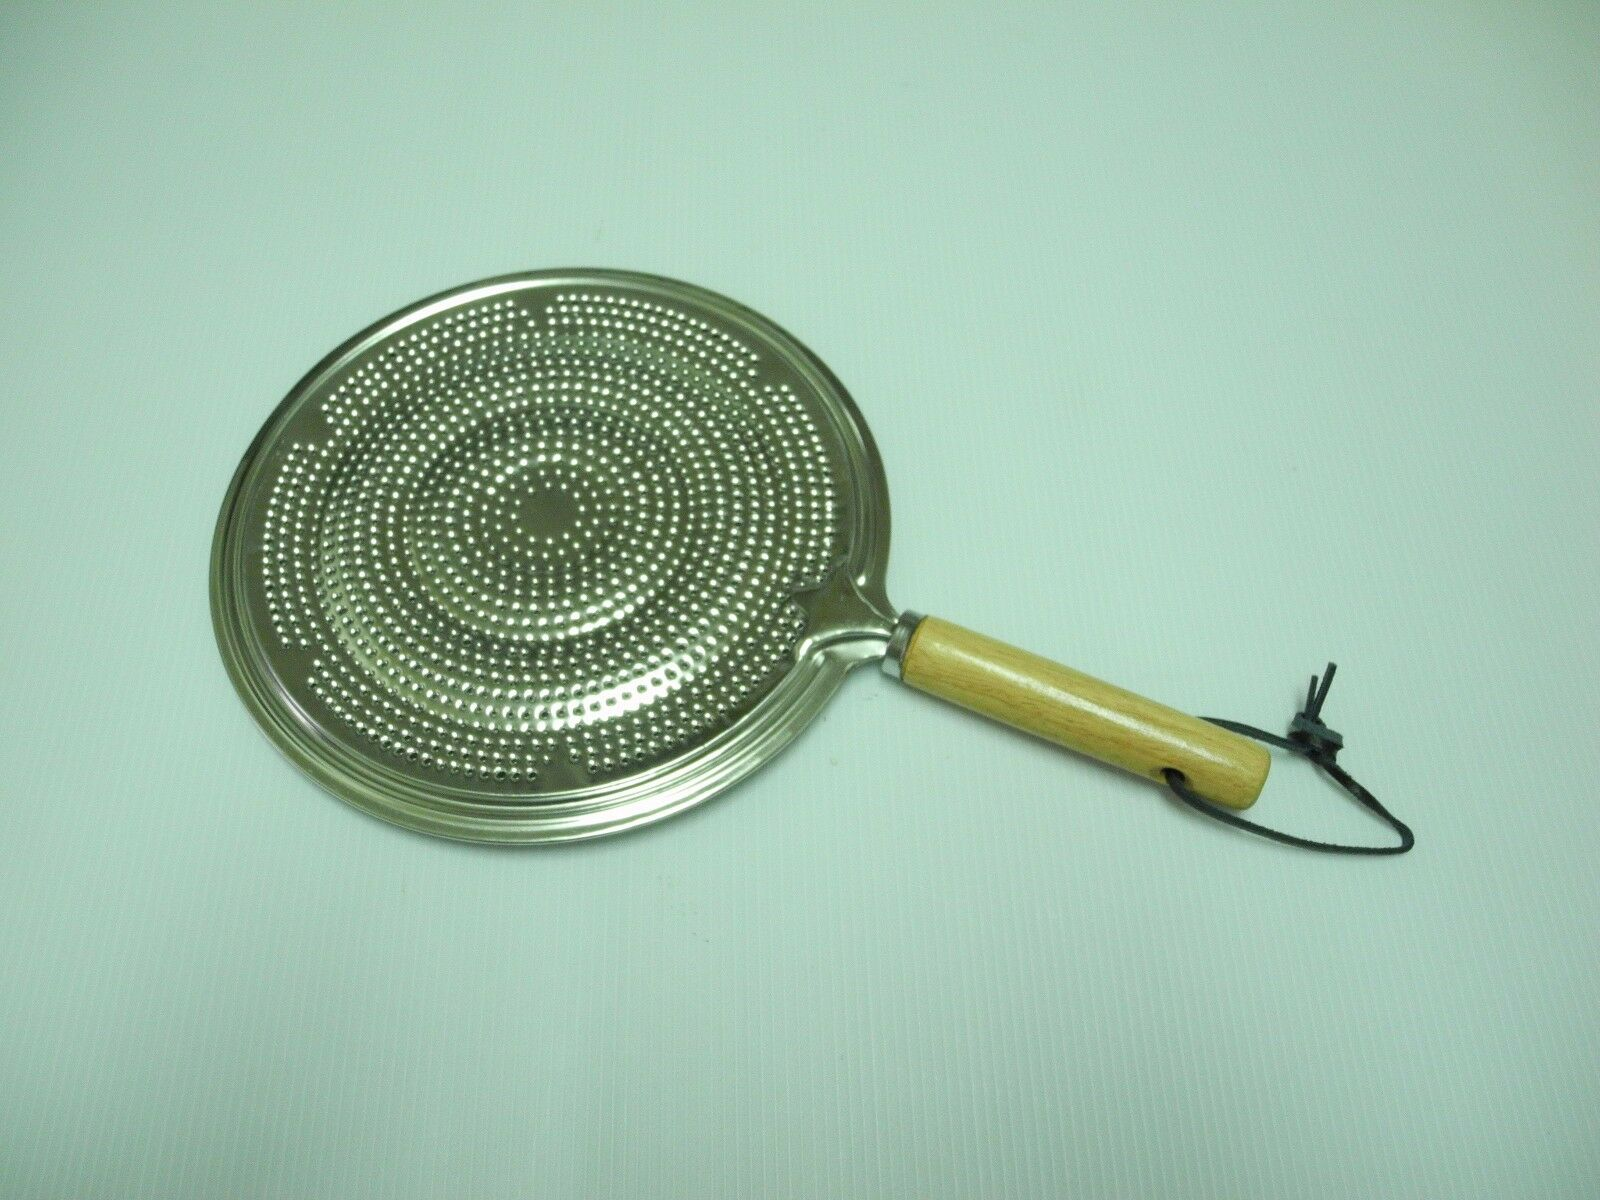 New Kitchen Craft 21Cm Simmer Ring With Wooden Handle